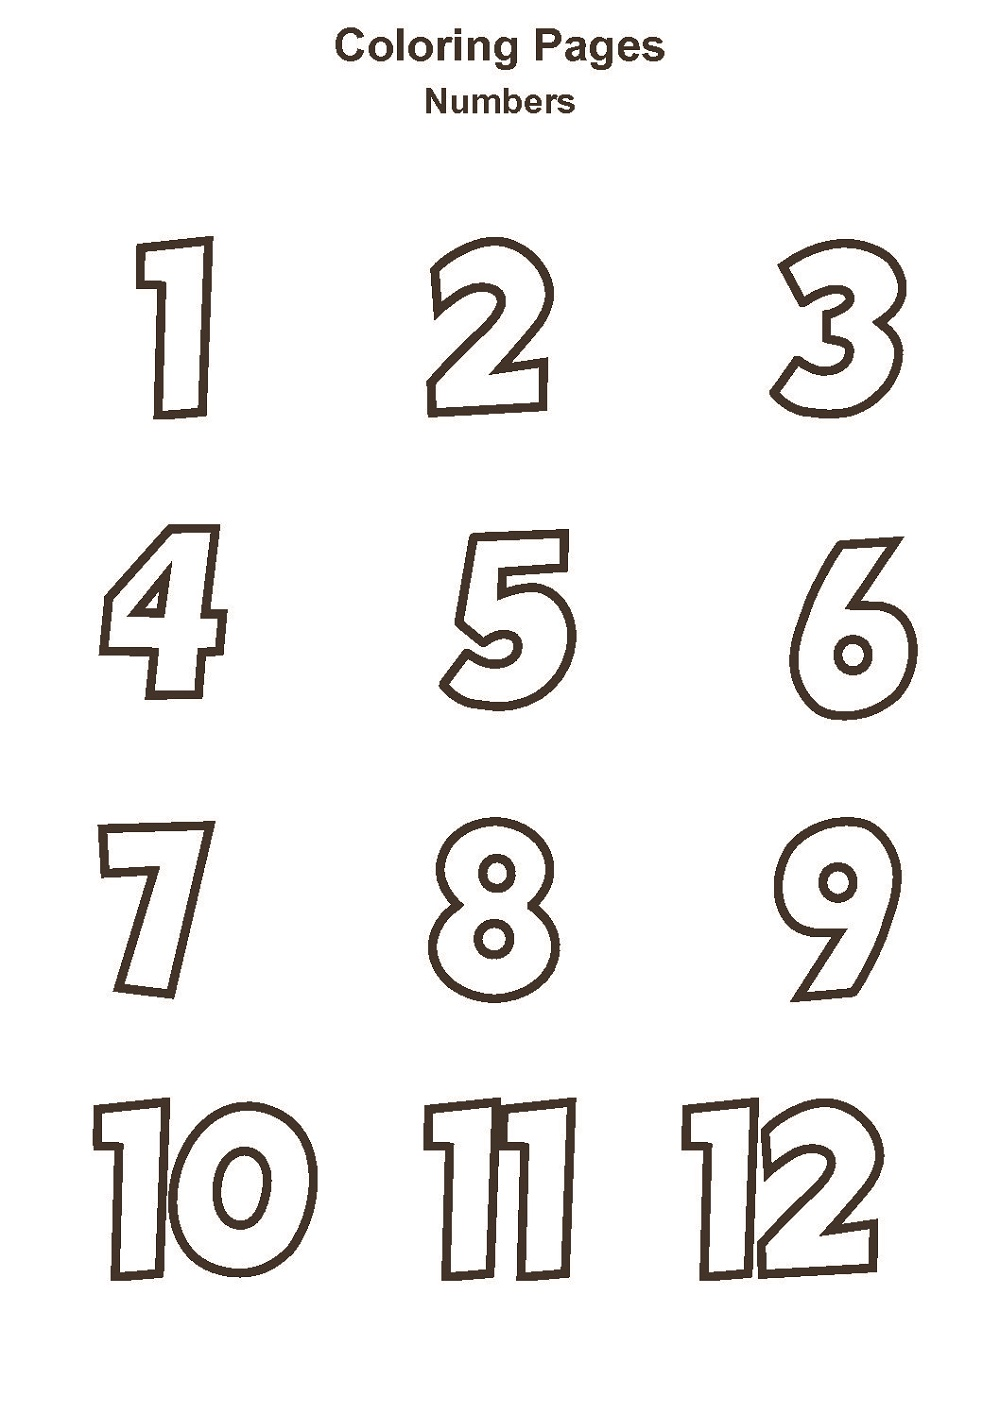 Number Coloring Pages Pictures